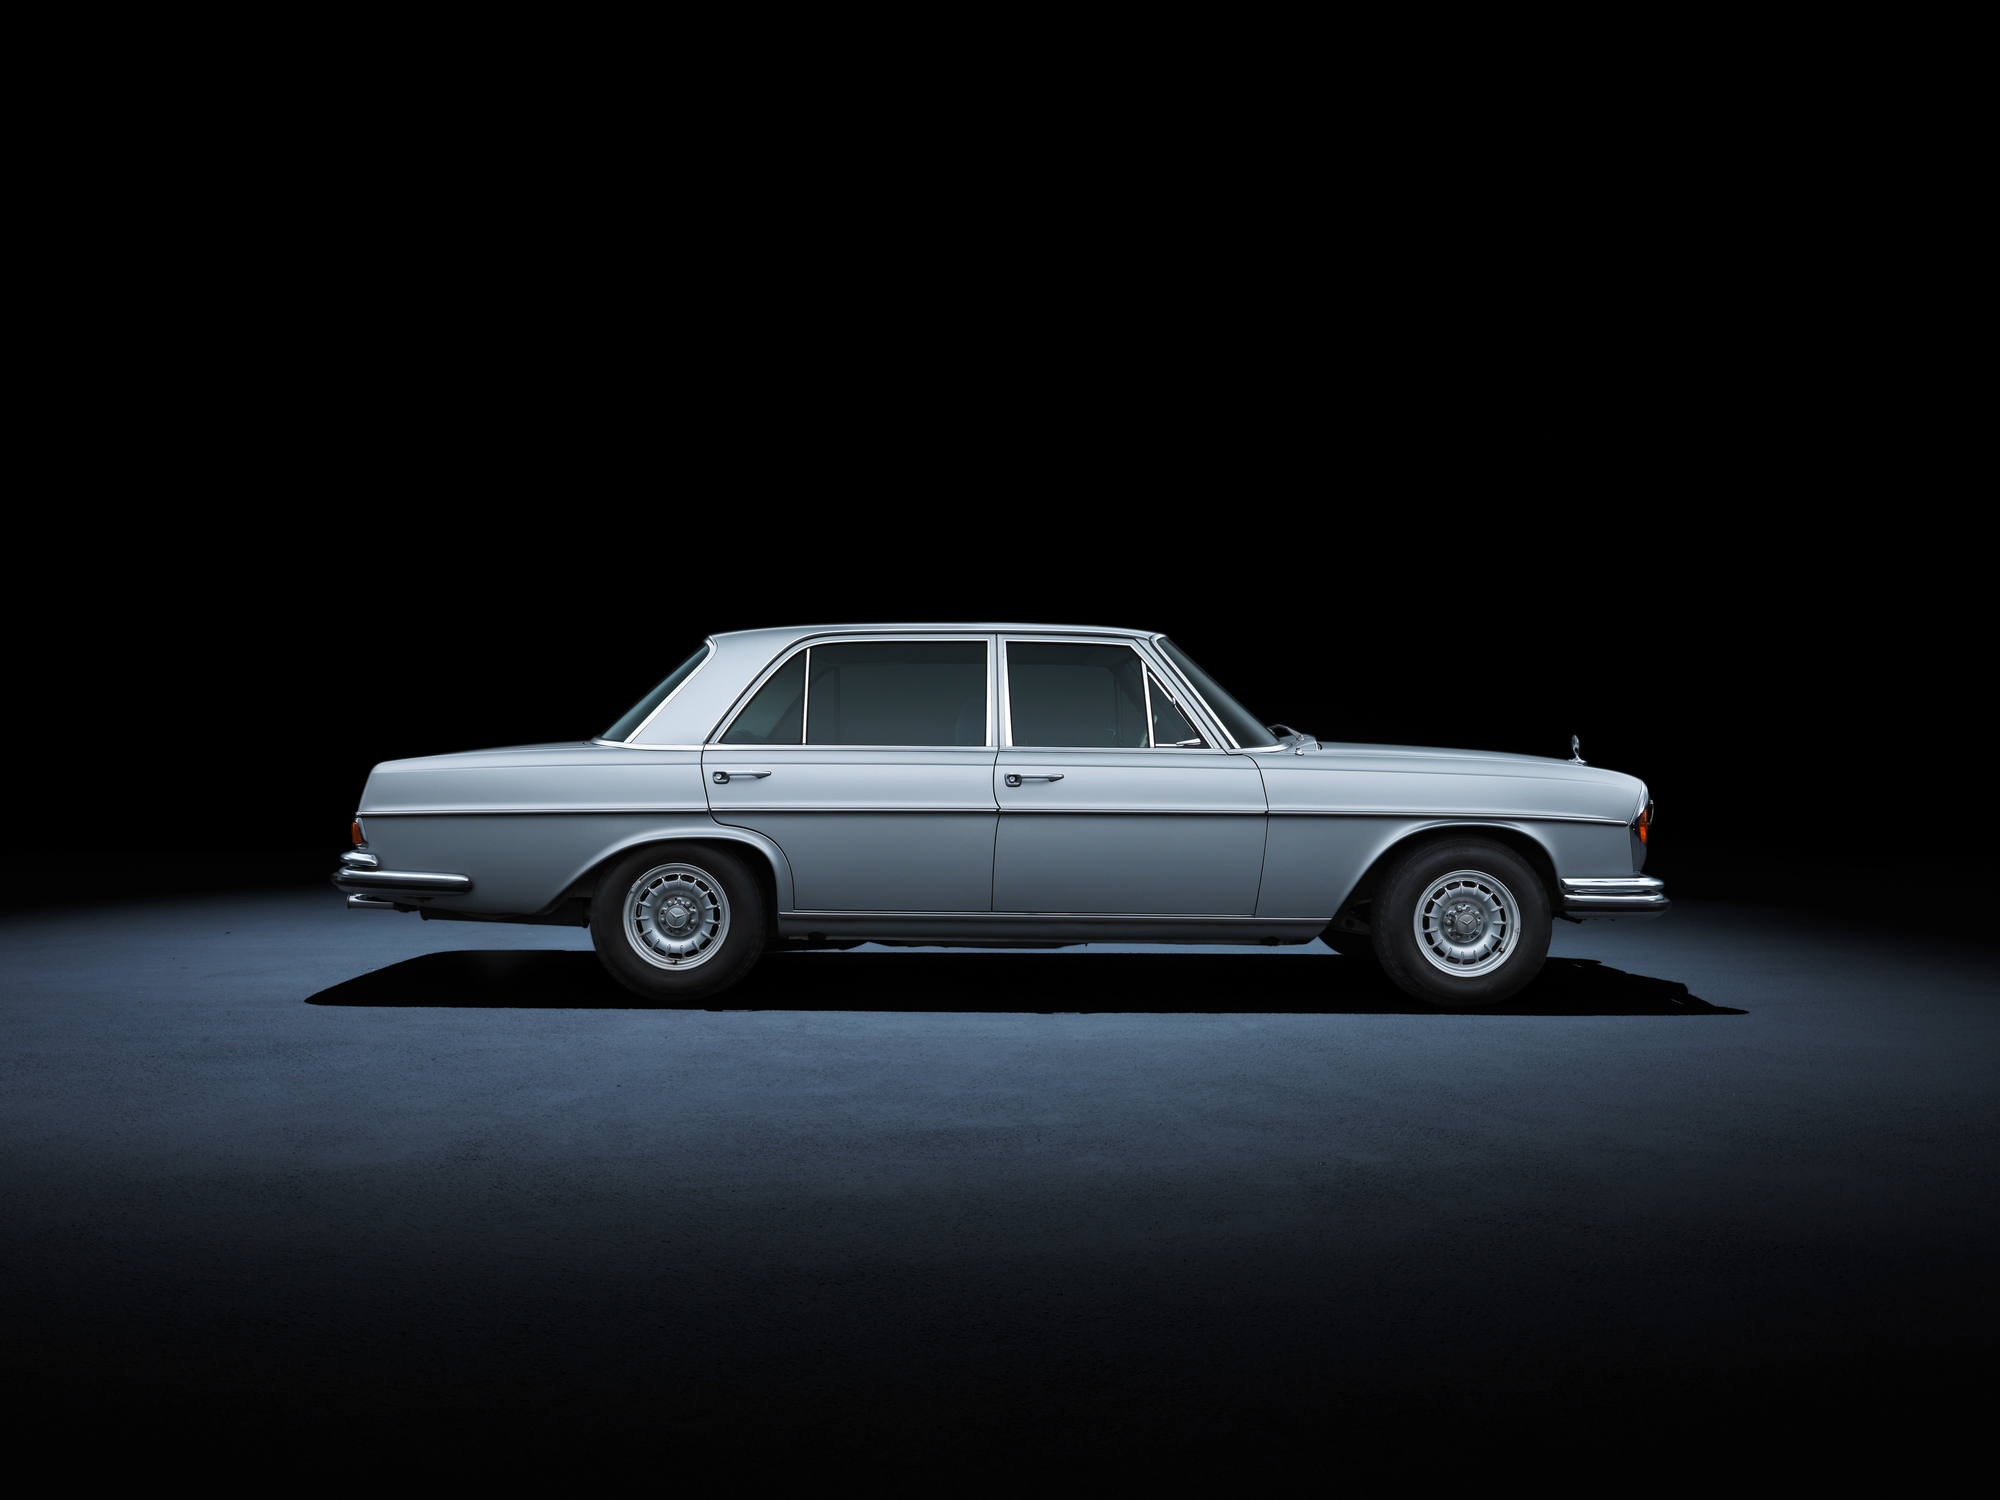 Mercedes-Benz 280 SE 4.5 Automatic 4-Speed